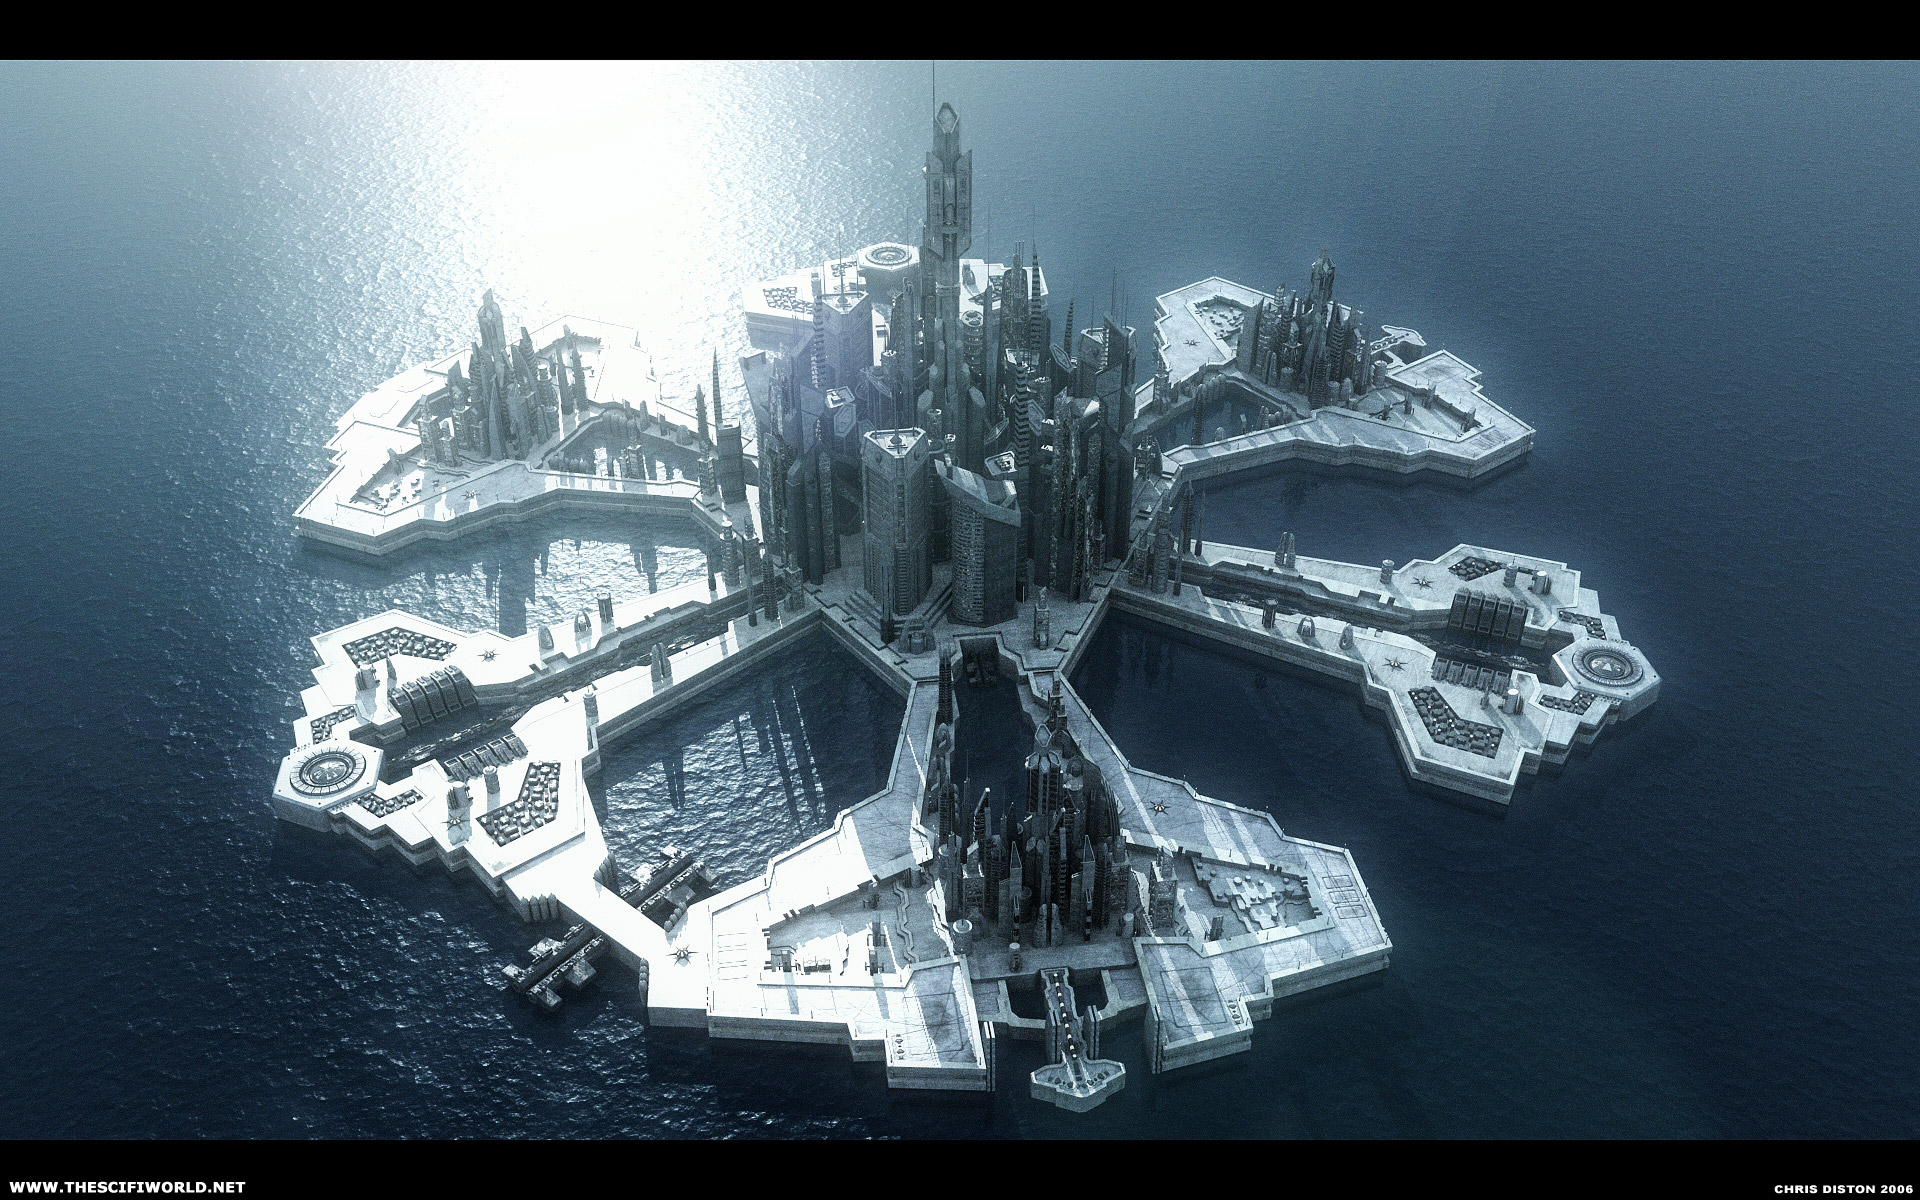 science fiction atlantis space base - photo #1